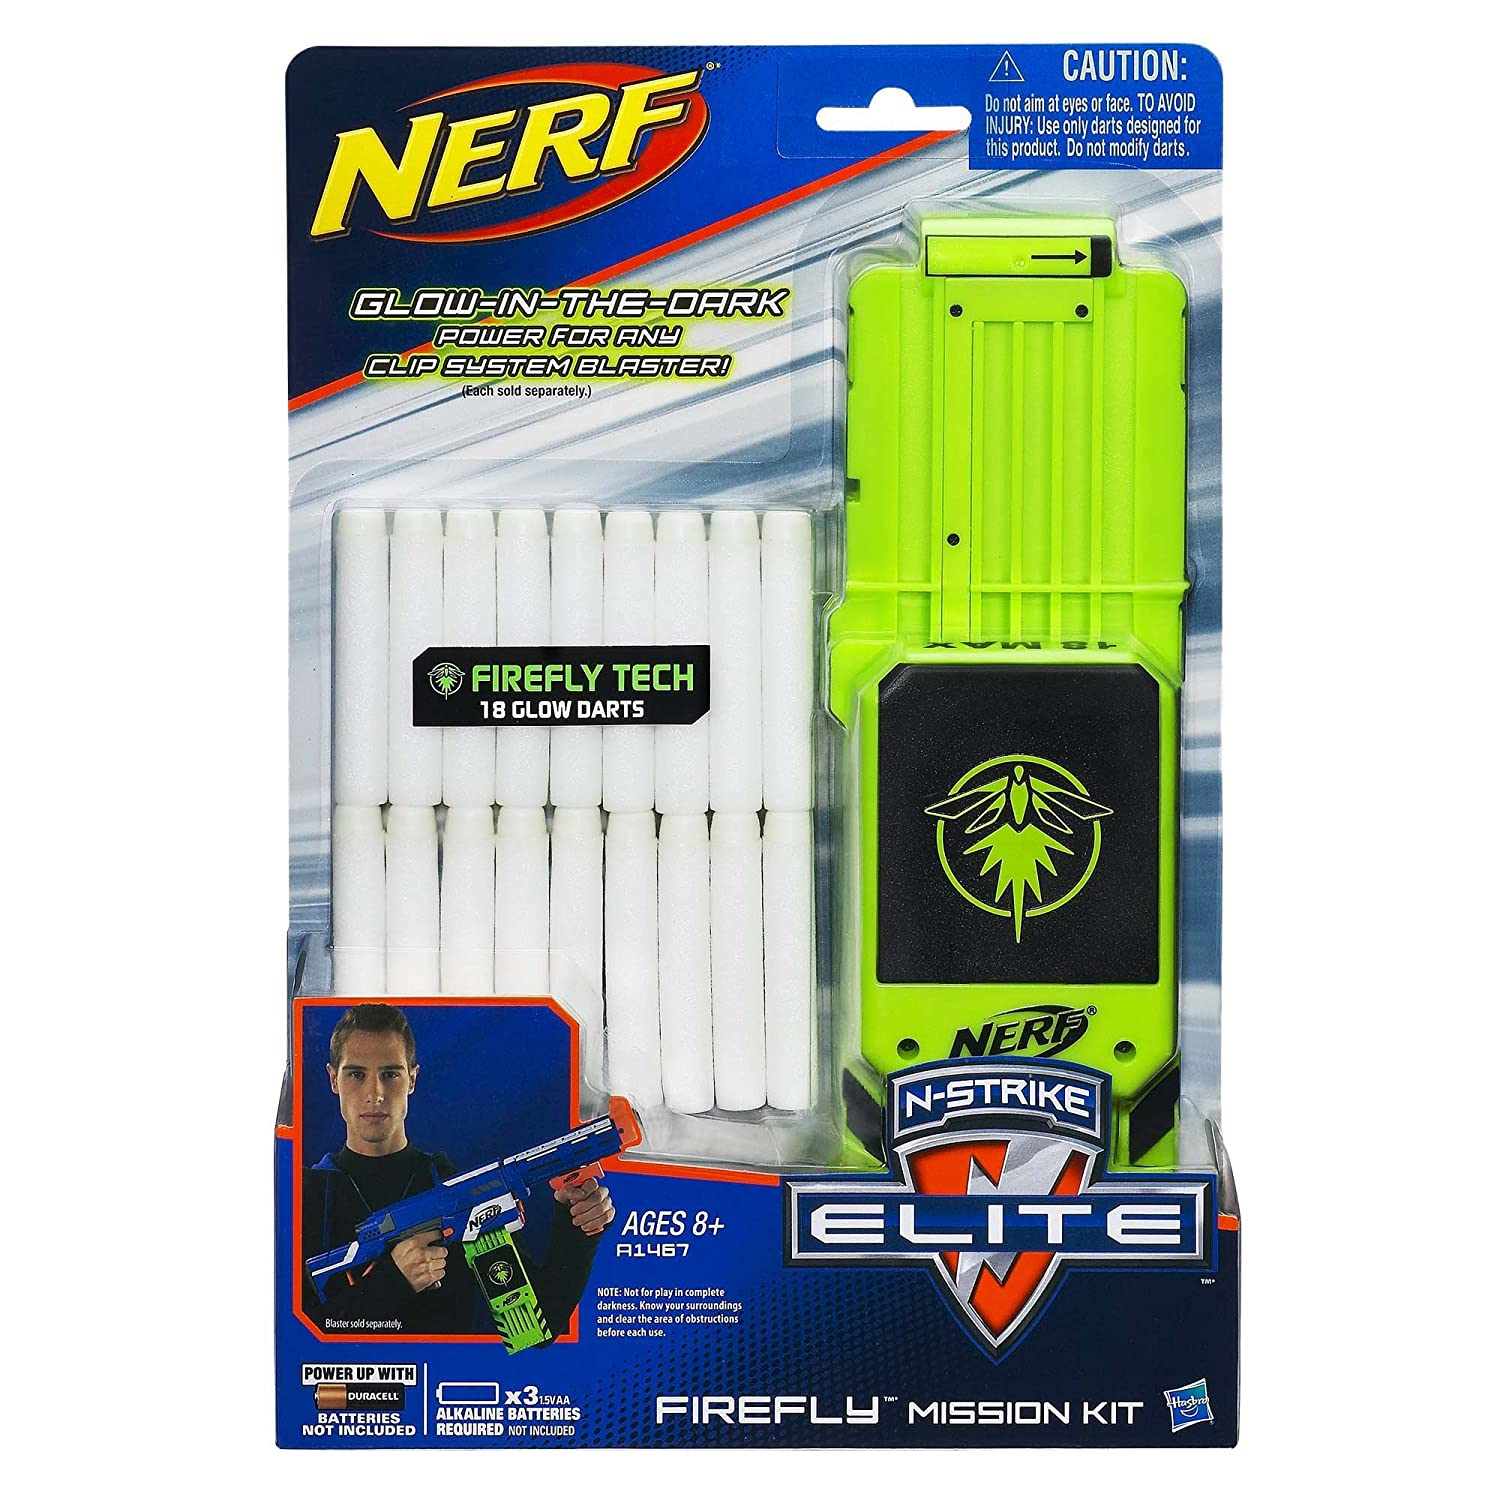 Amazon ficial Nerf N Strike Elite Series Firefly Mission Kit Pack Toys & Games